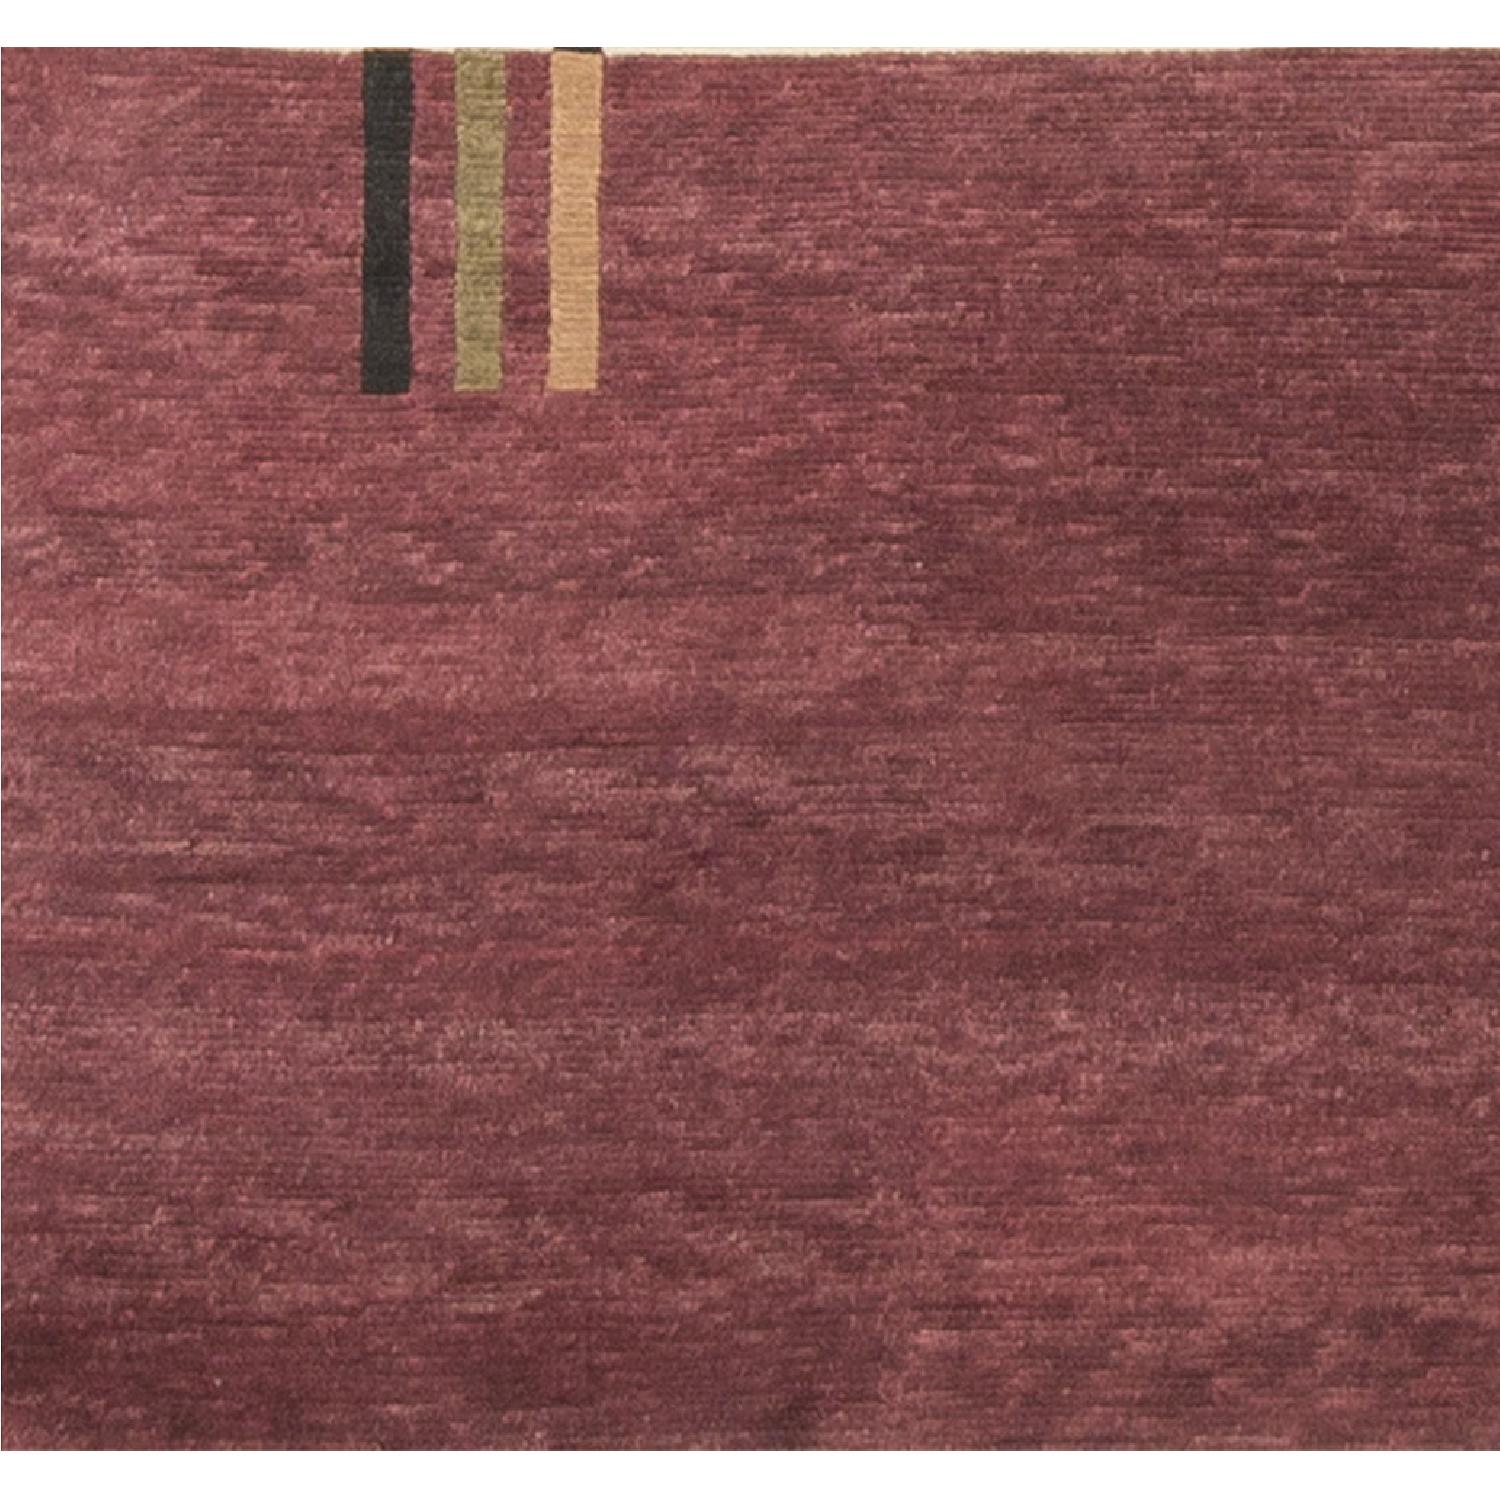 Modern Contemporary Hand Knotted Wool Rug in Red/Ivory - image-3